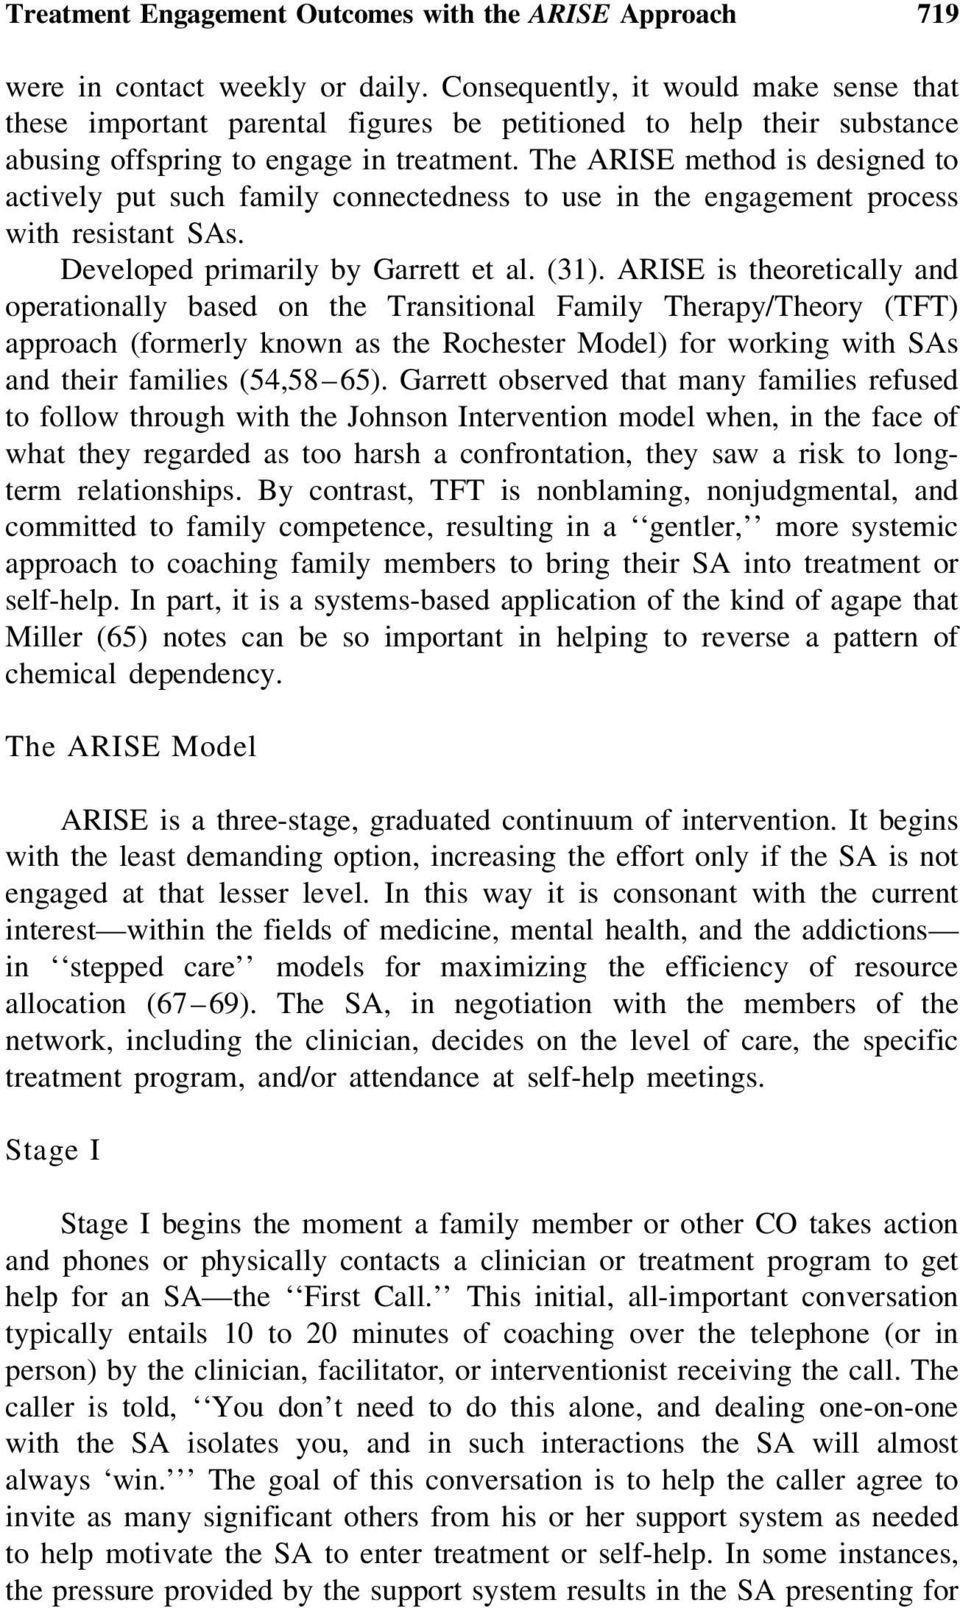 The ARISE method is designed to actively put such family connectedness to use in the engagement process with resistant SAs. Developed primarily by Garrett et al. (31).